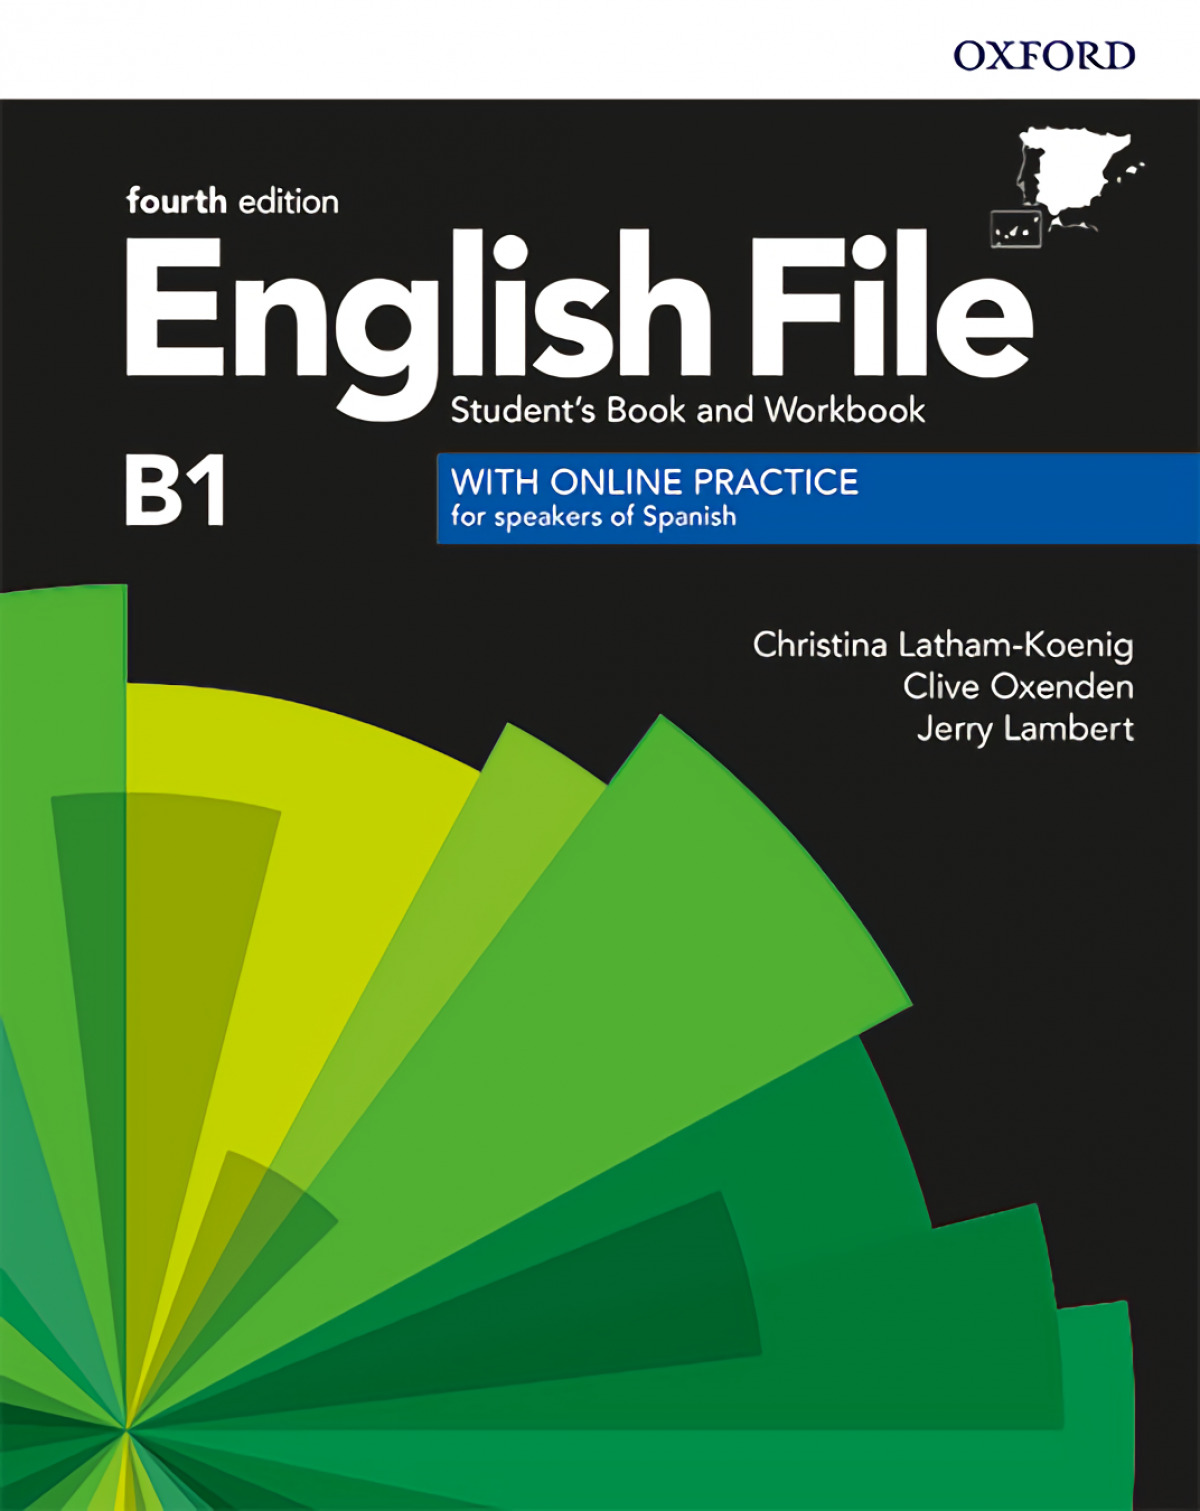 ENGLISH FILE B1 INTERMEDIATE STUDENT S WORKBOOK KEY WITH ONLINE PRACTICE FOURTH EDITION 978019405806